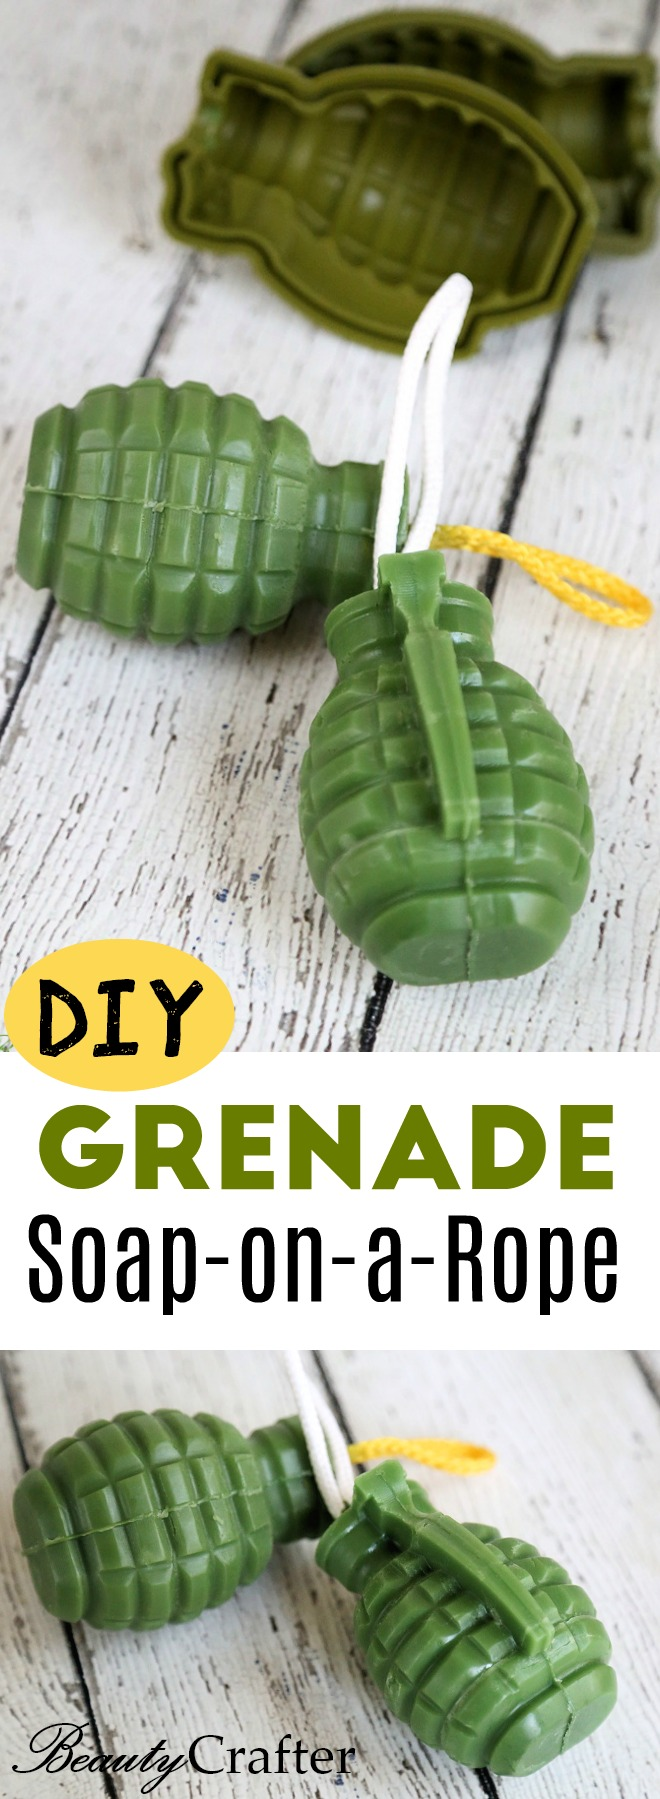 DIY Grenade Soap on a Rope great homemade gift for men, anyone in the military or kids who are interested in the topic.